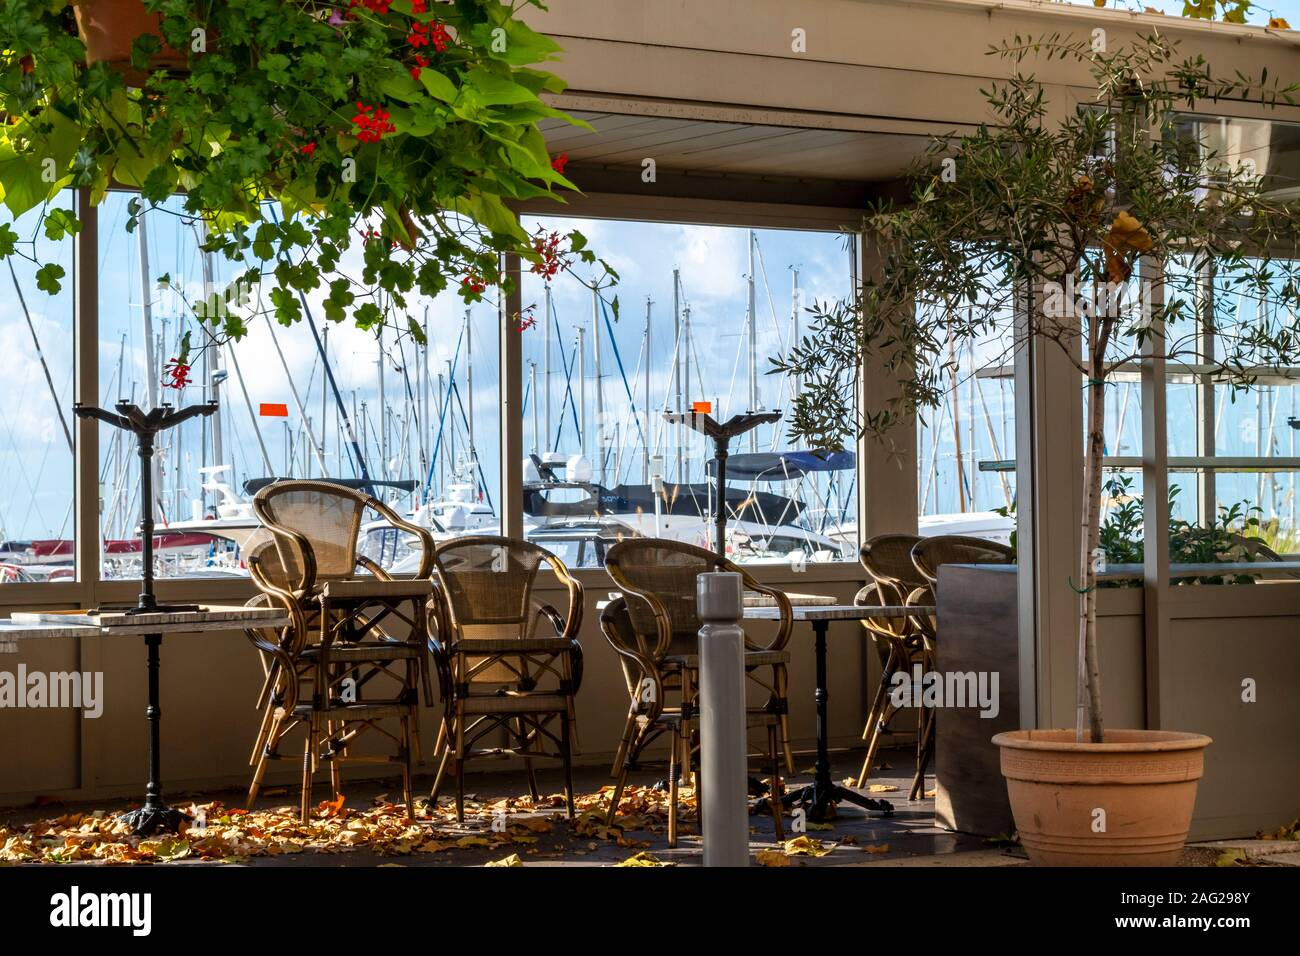 A small, empty covered patio with tables and chairs stacked fills with leaves at the marina of Cannes, France, as autumn starts on the French Riviera Stock Photo